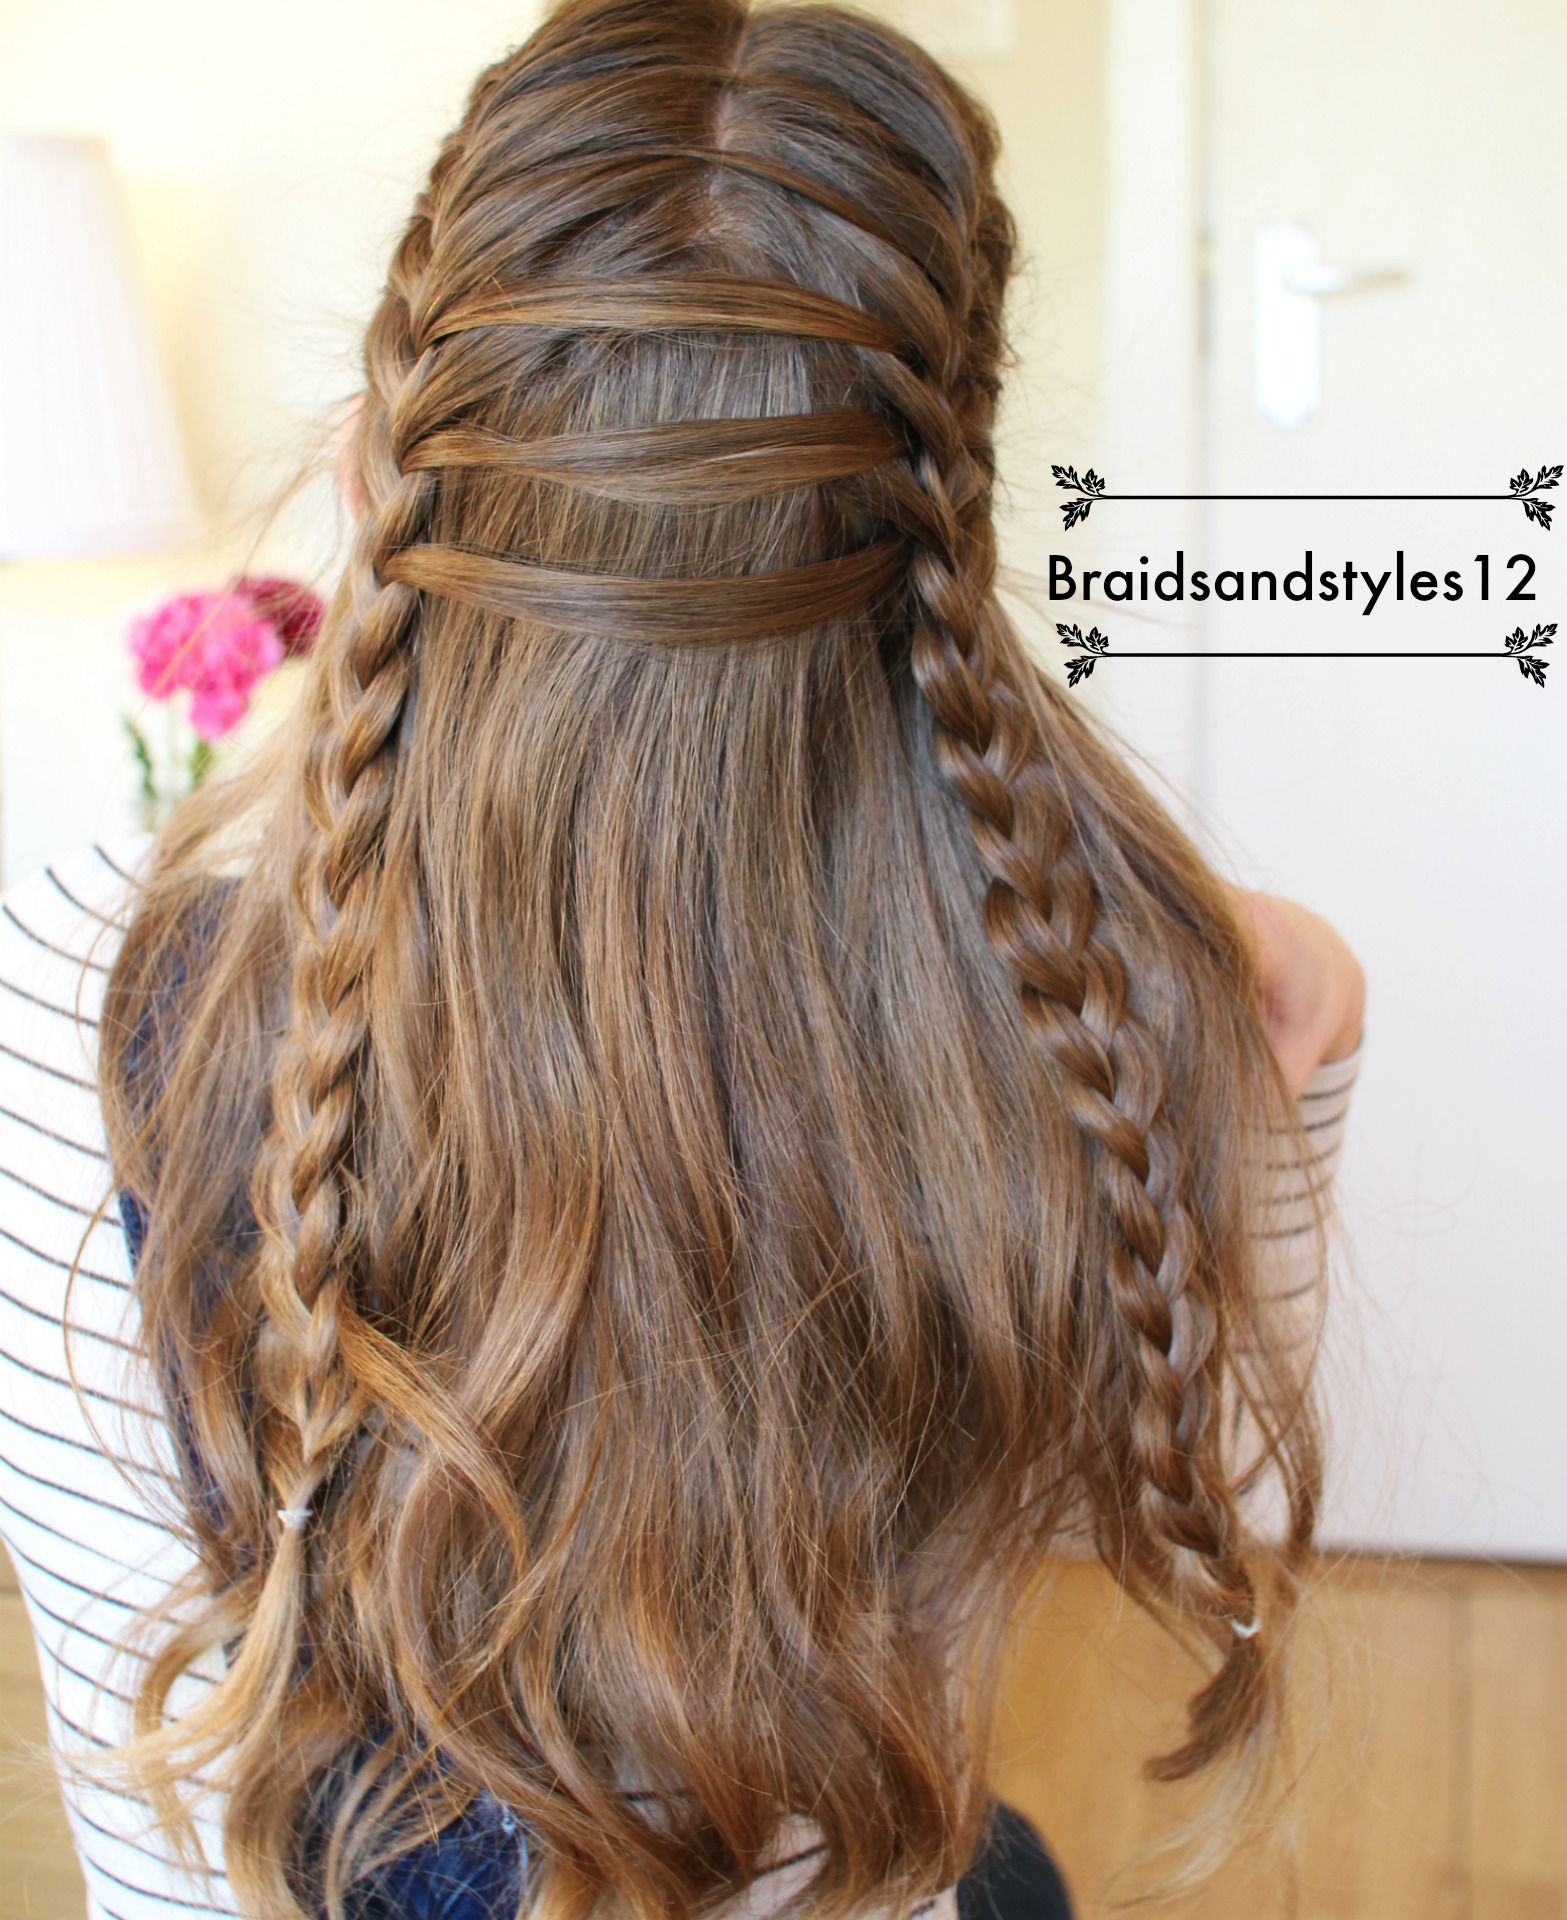 Heatless Hairstyles ideas by Braidsandstyles12. Braided Hairstyles ...